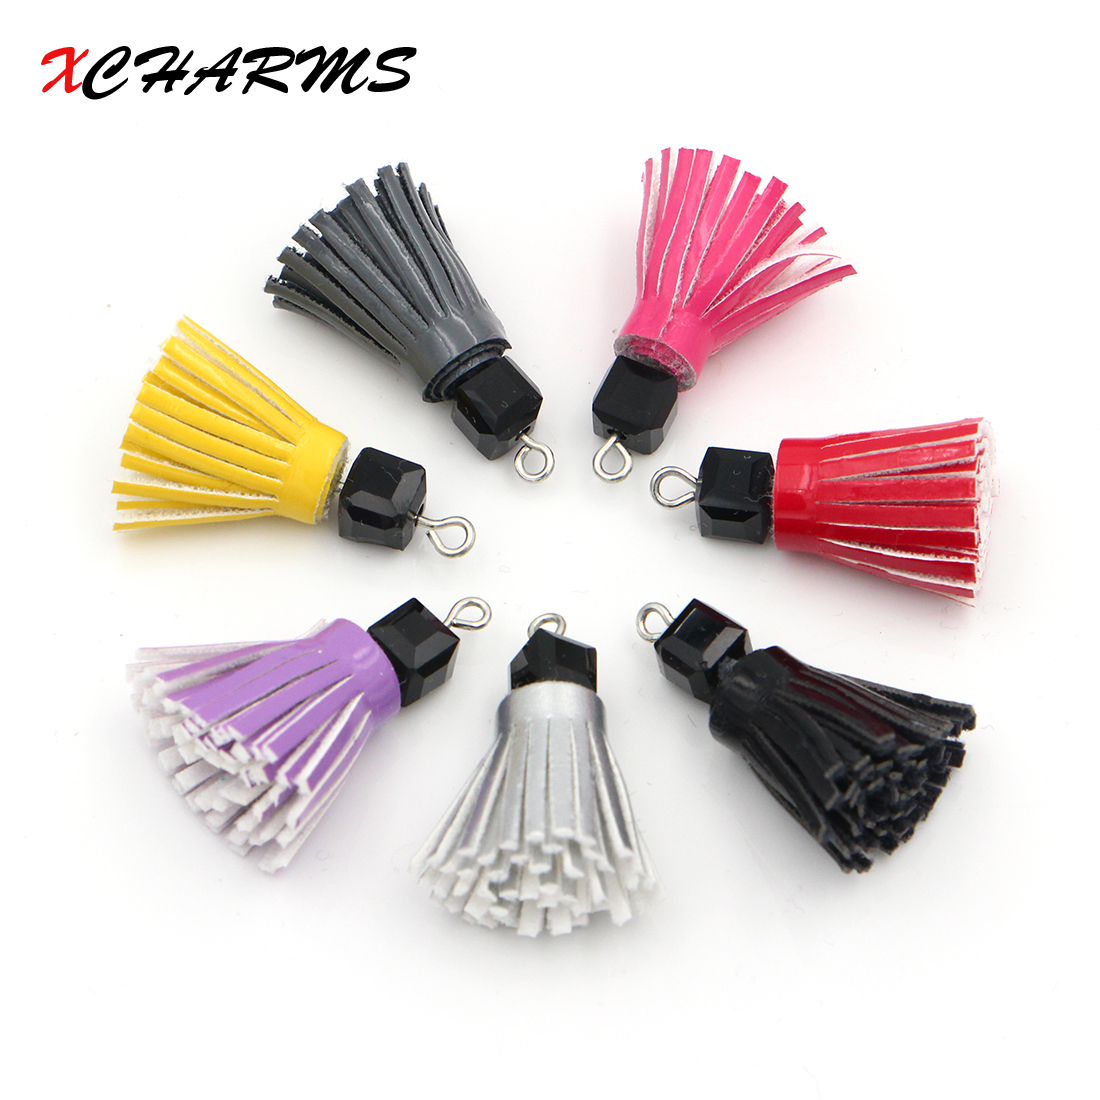 XCHAMRS 1Piece 7*10mm Diy PU Leather Tassel For Jewelry Making DIY Acessories Suede Tassels for Key Rings for earring making ...